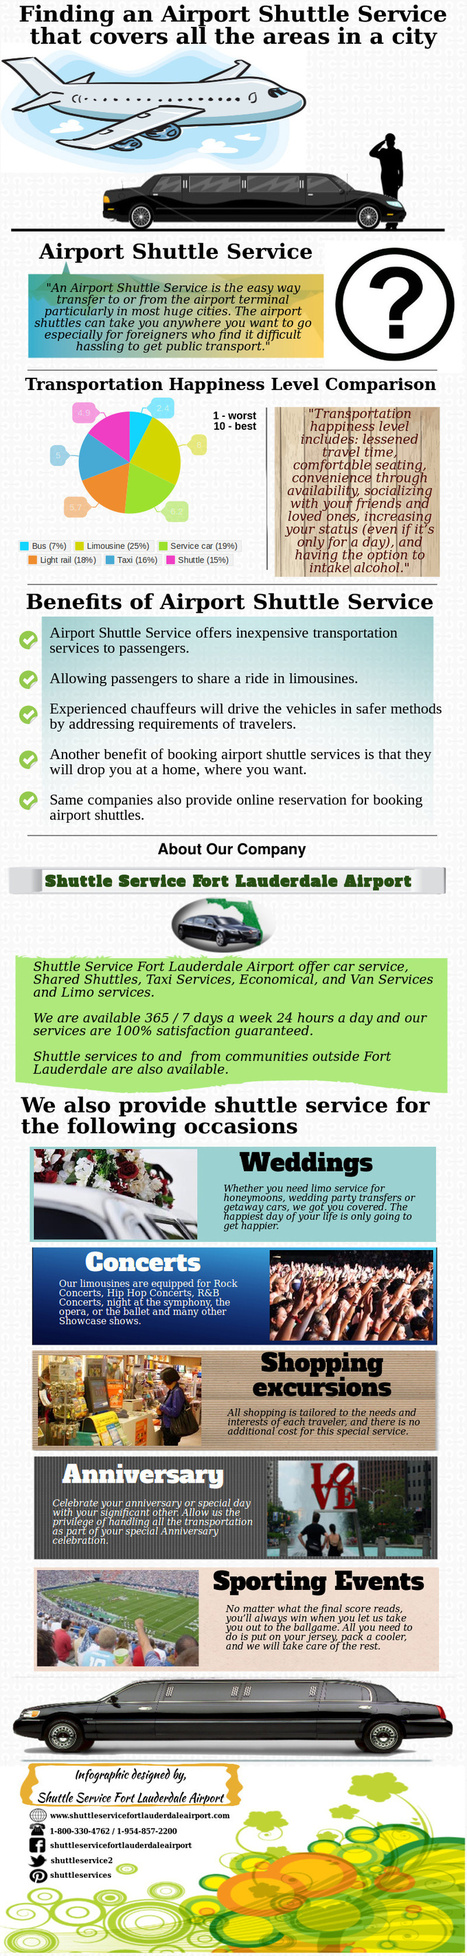 Finding an Airport Shuttle Service that covers all the areas in a city   shuttleservicefortlauderdaleairport   Scoop.it